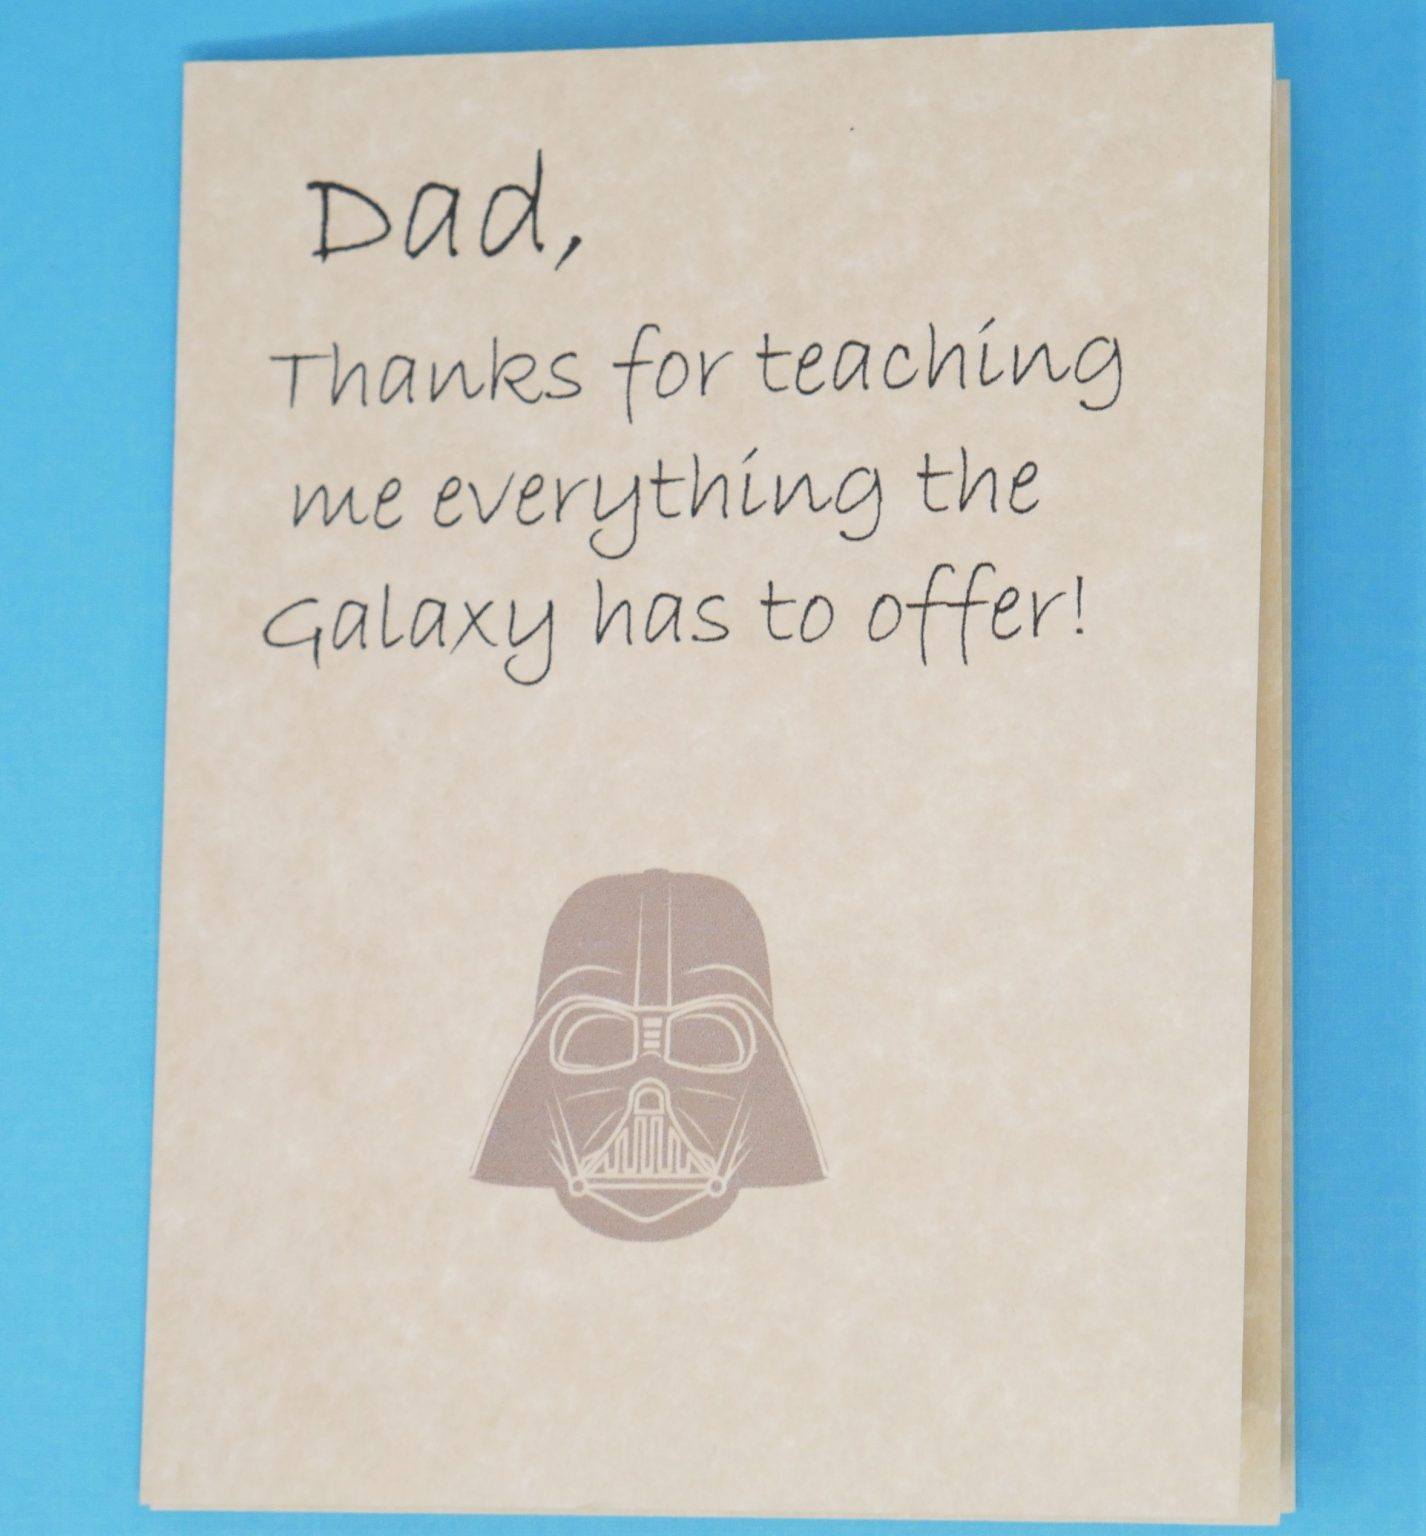 1 free printable fathers day card with a Galaxy theme.